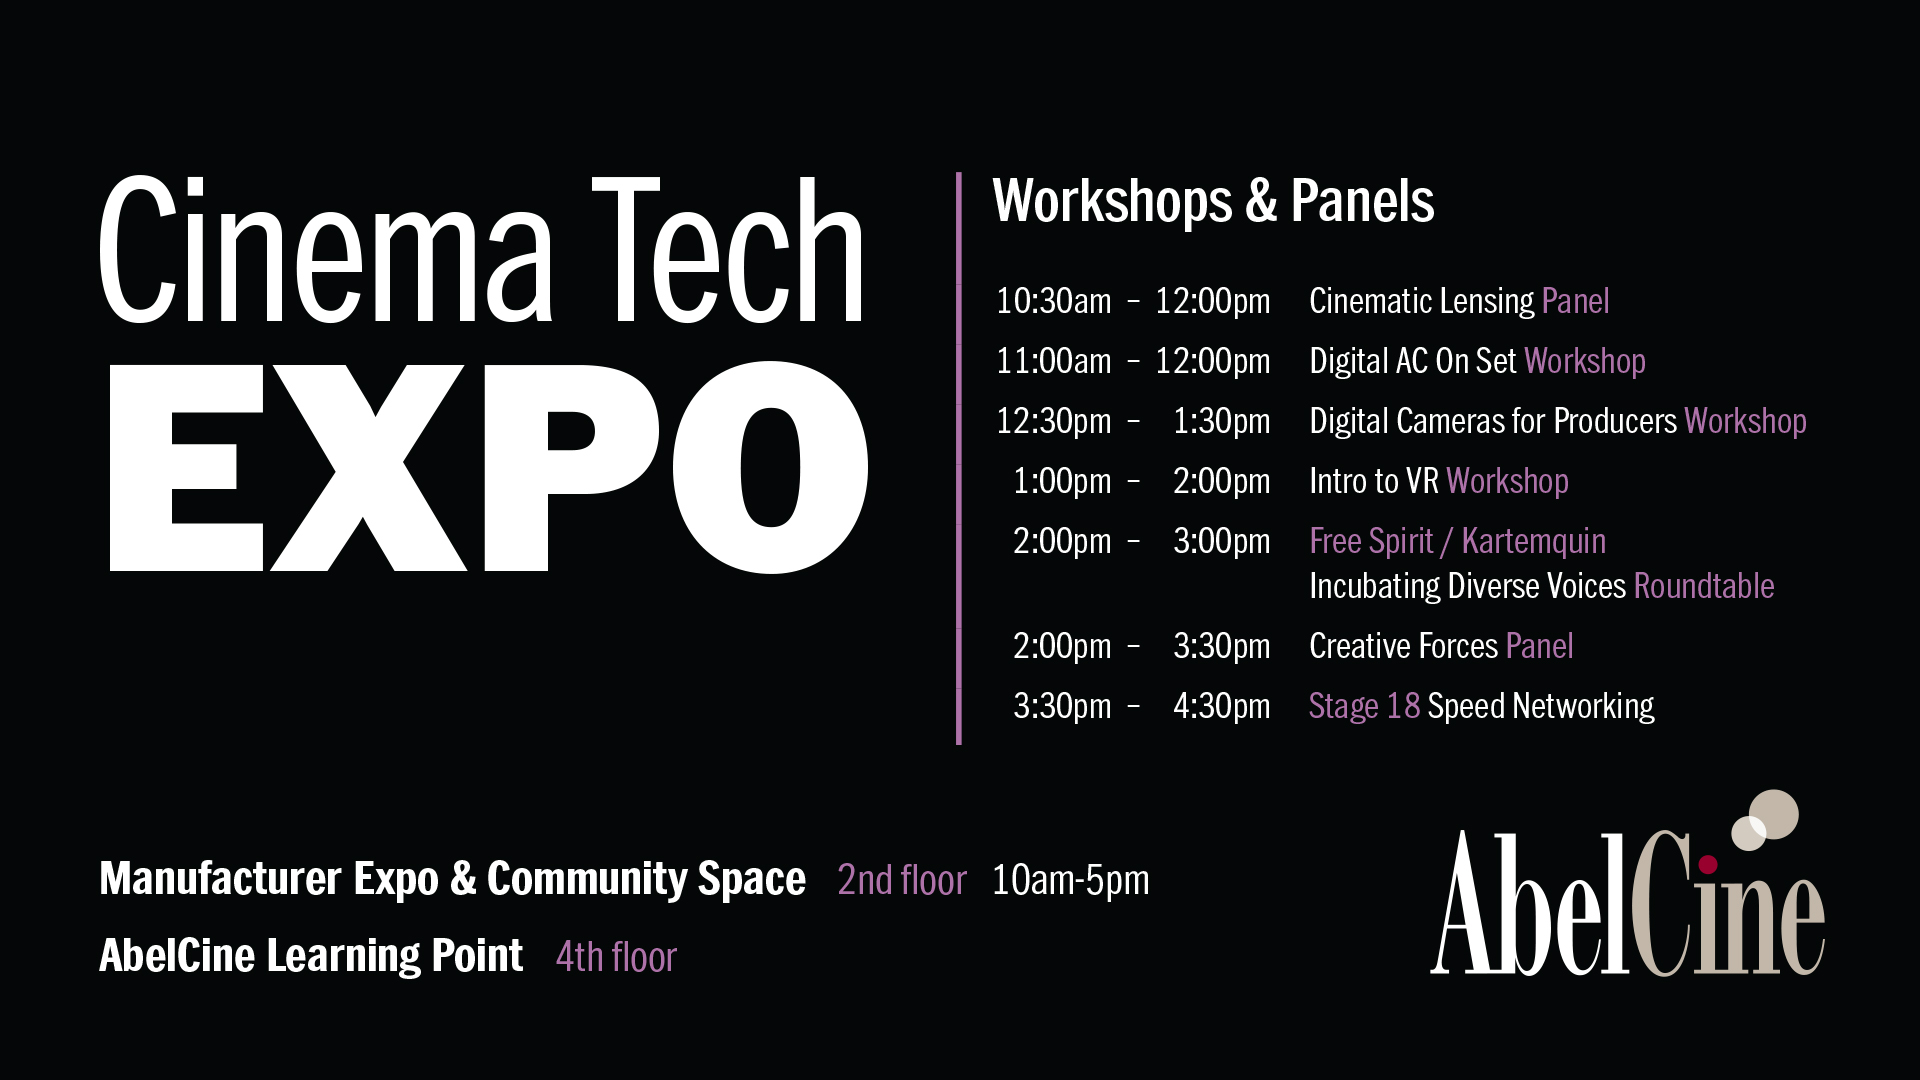 Chicago Cinema Tech Expo Schedule